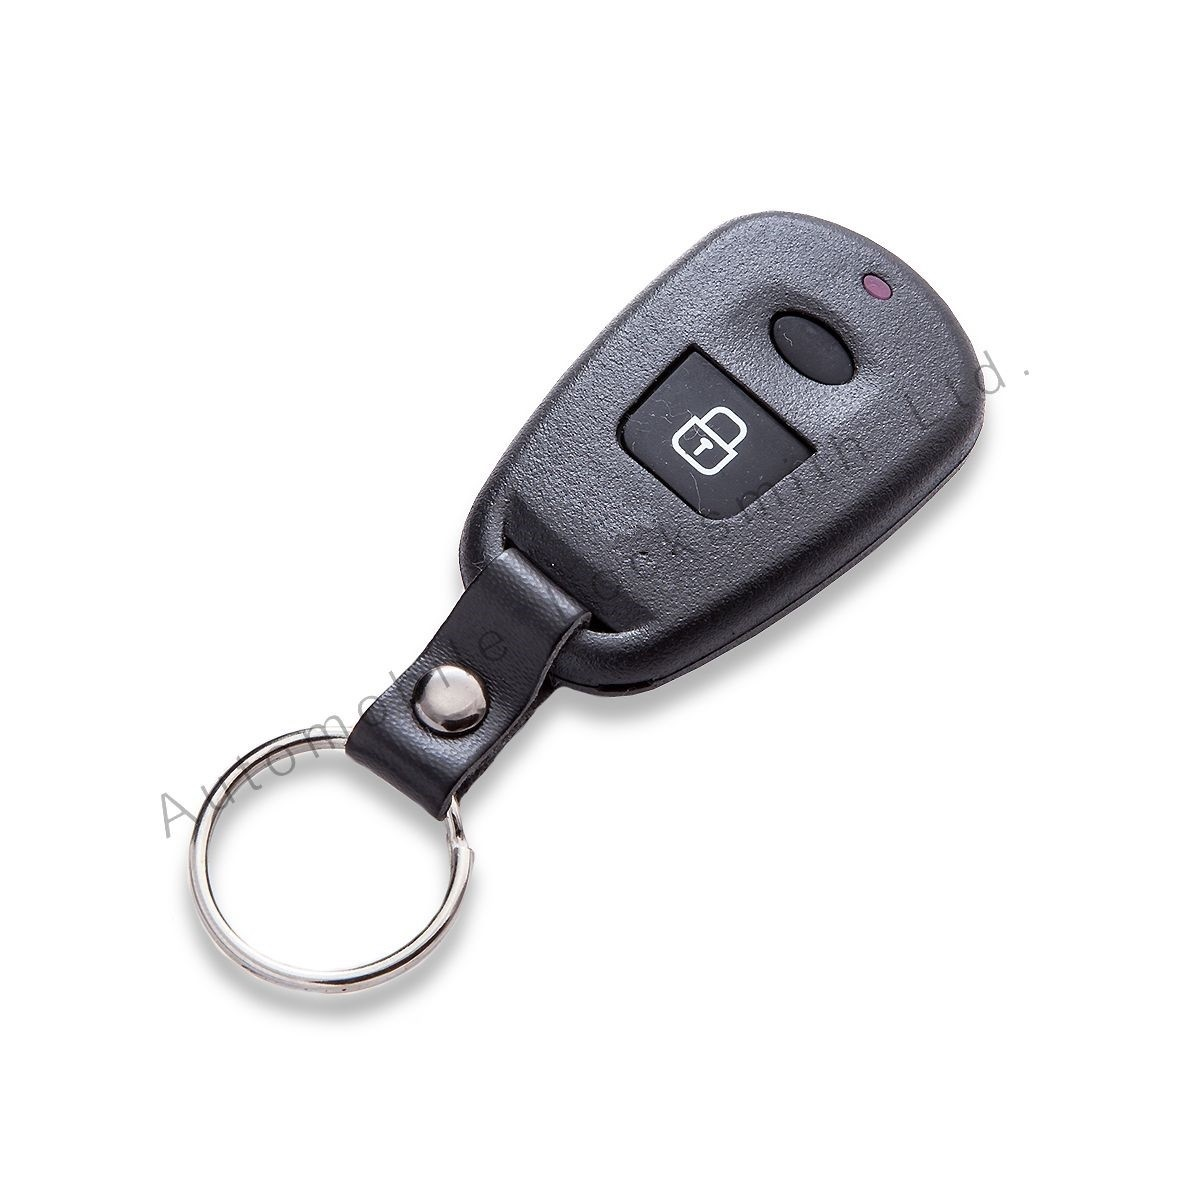 Key case shell for Hyundai 2 button remote key without battery holder